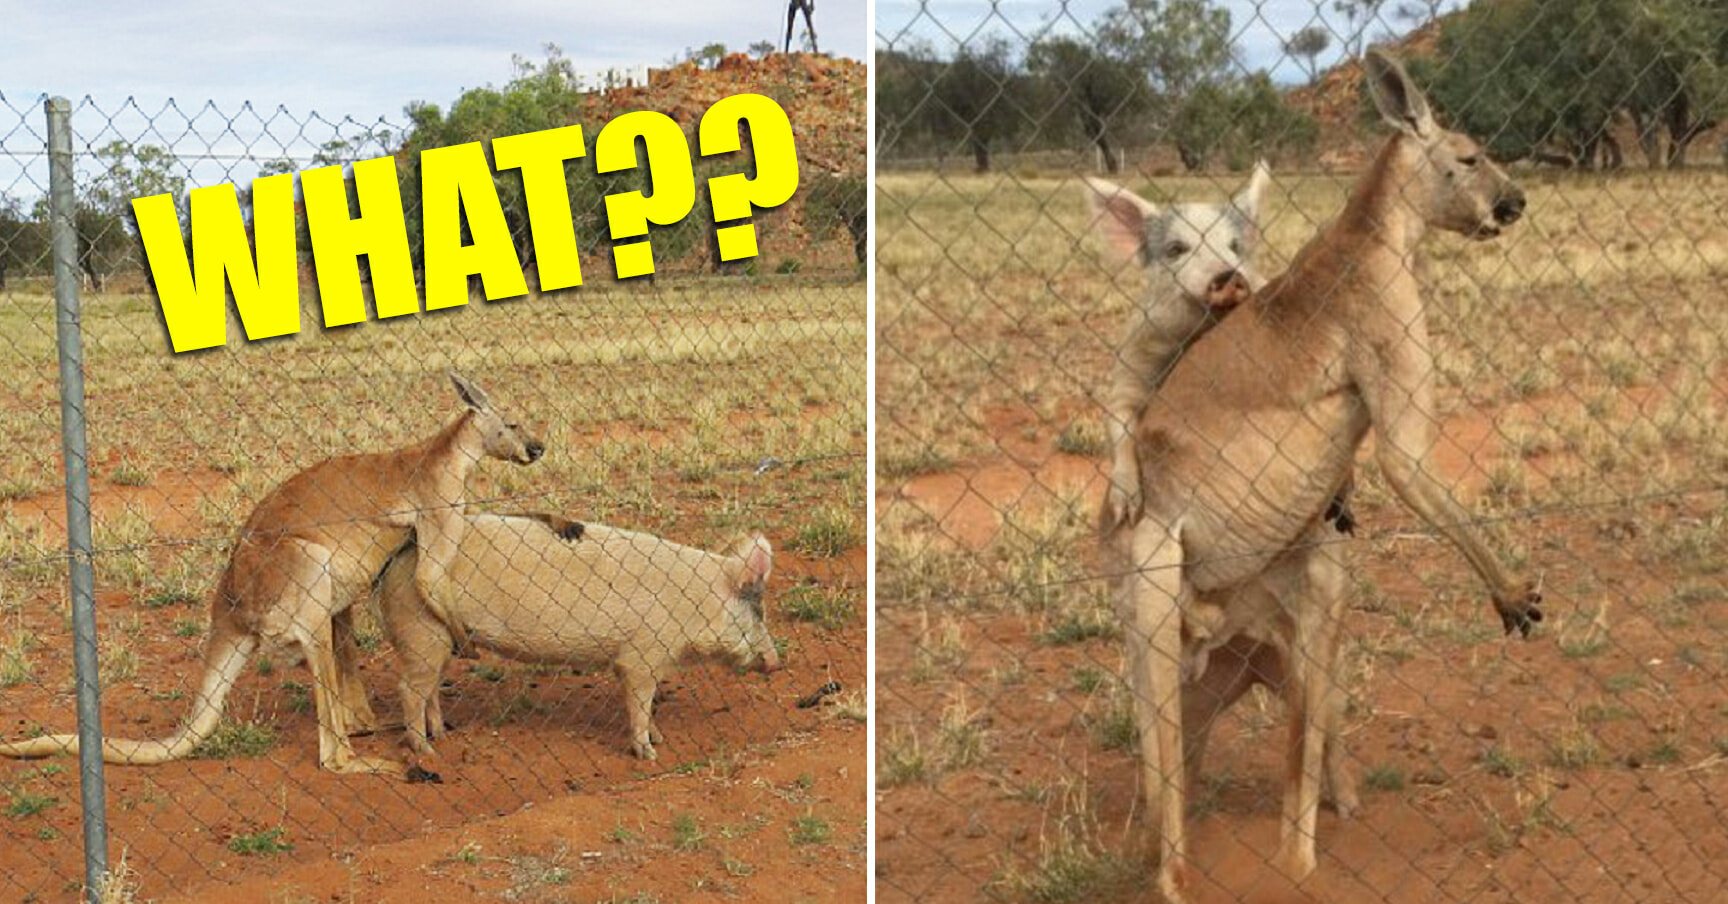 Researcher Stumbles Upon a Kangaroo and a Pig...Getting Hot and Heavy??? - World Of Buzz 3